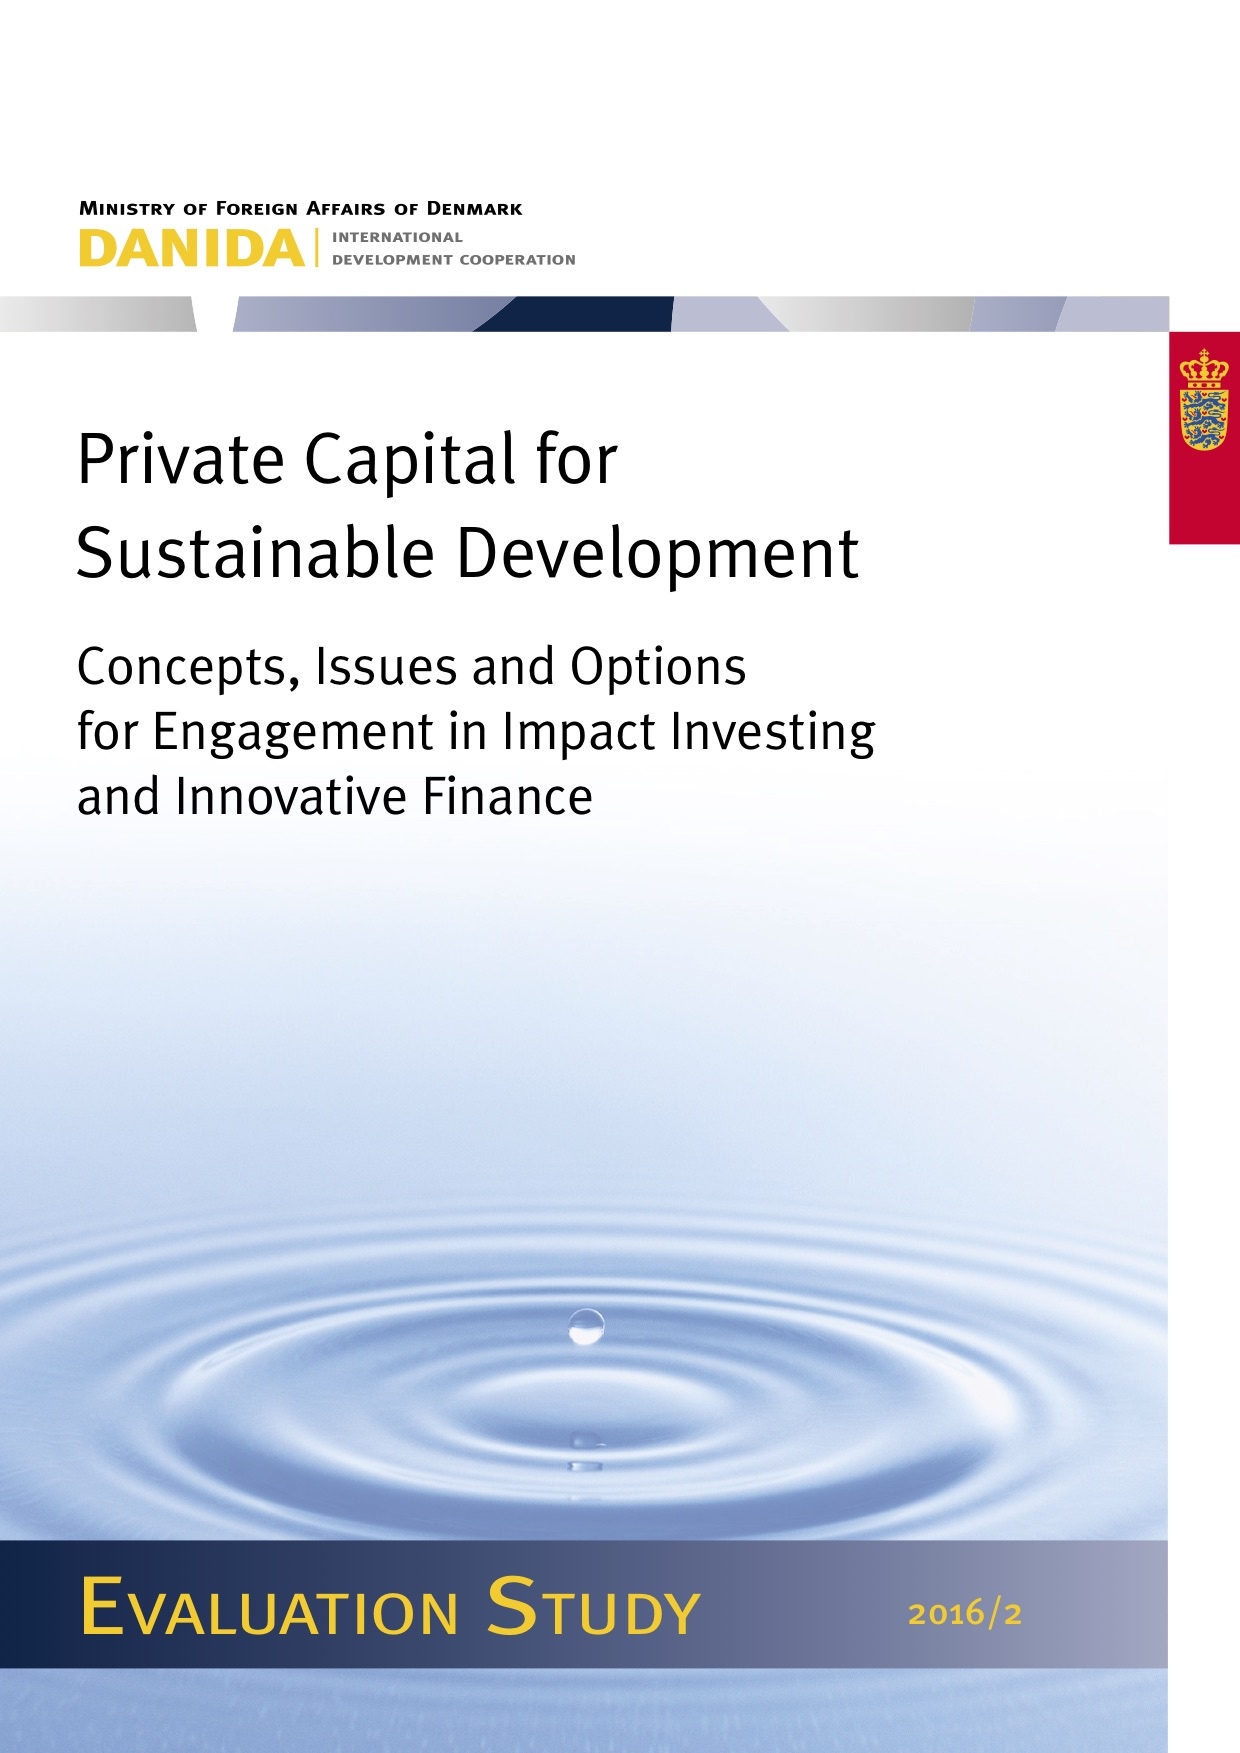 Private Capital for Sustainable Development: Concepts, Issues and Options for Engagement in Impact Investing and Innovative Finance